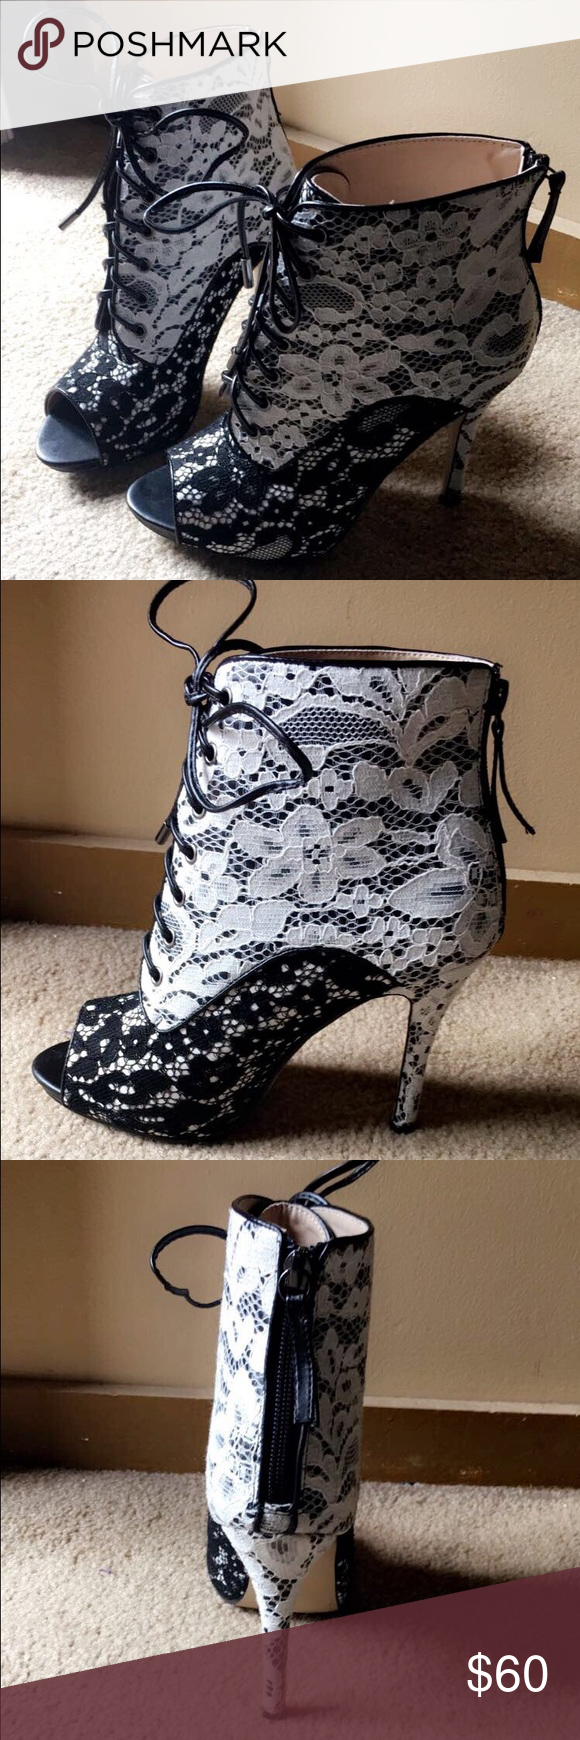 Black N' White Peep Toe Booties Ankle length Black n' White Lace Toe Booties with zipper in the back. Real cute and chic for any occasion. Shoe Dazzle Shoes Lace Up Boots